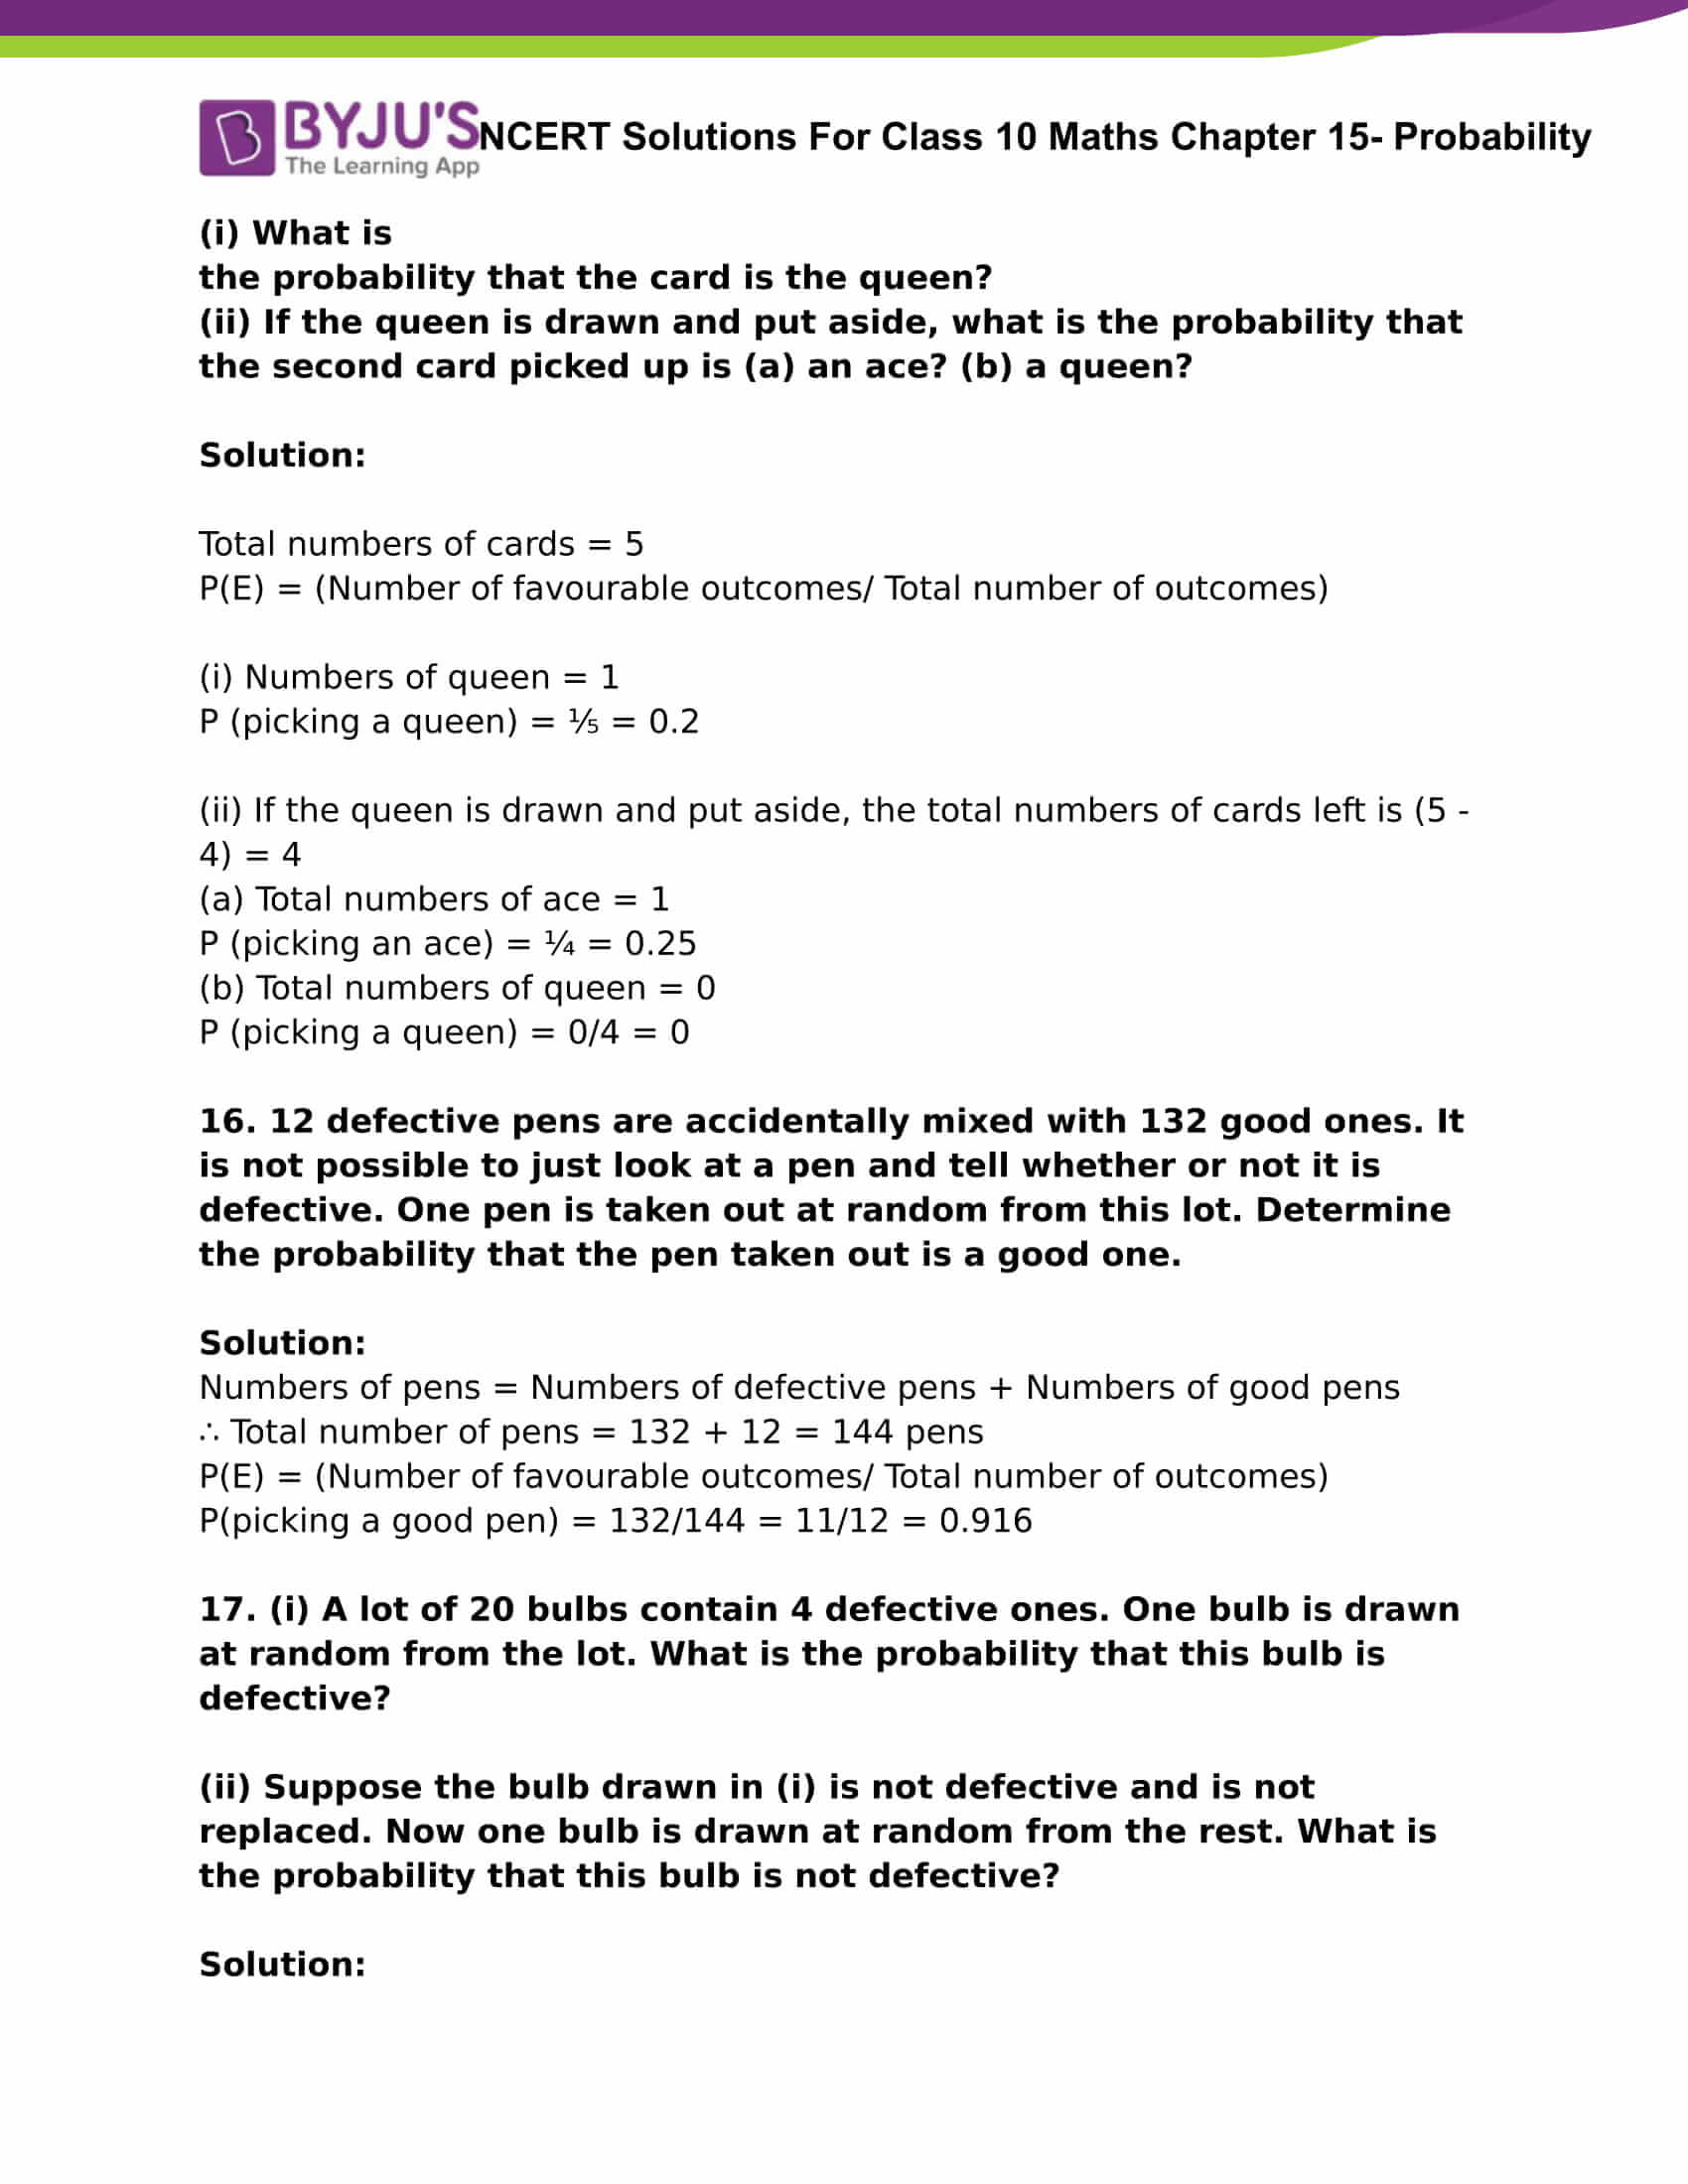 NCERT Solutions For Class 10 Maths Chapter 15 Probability Part 08